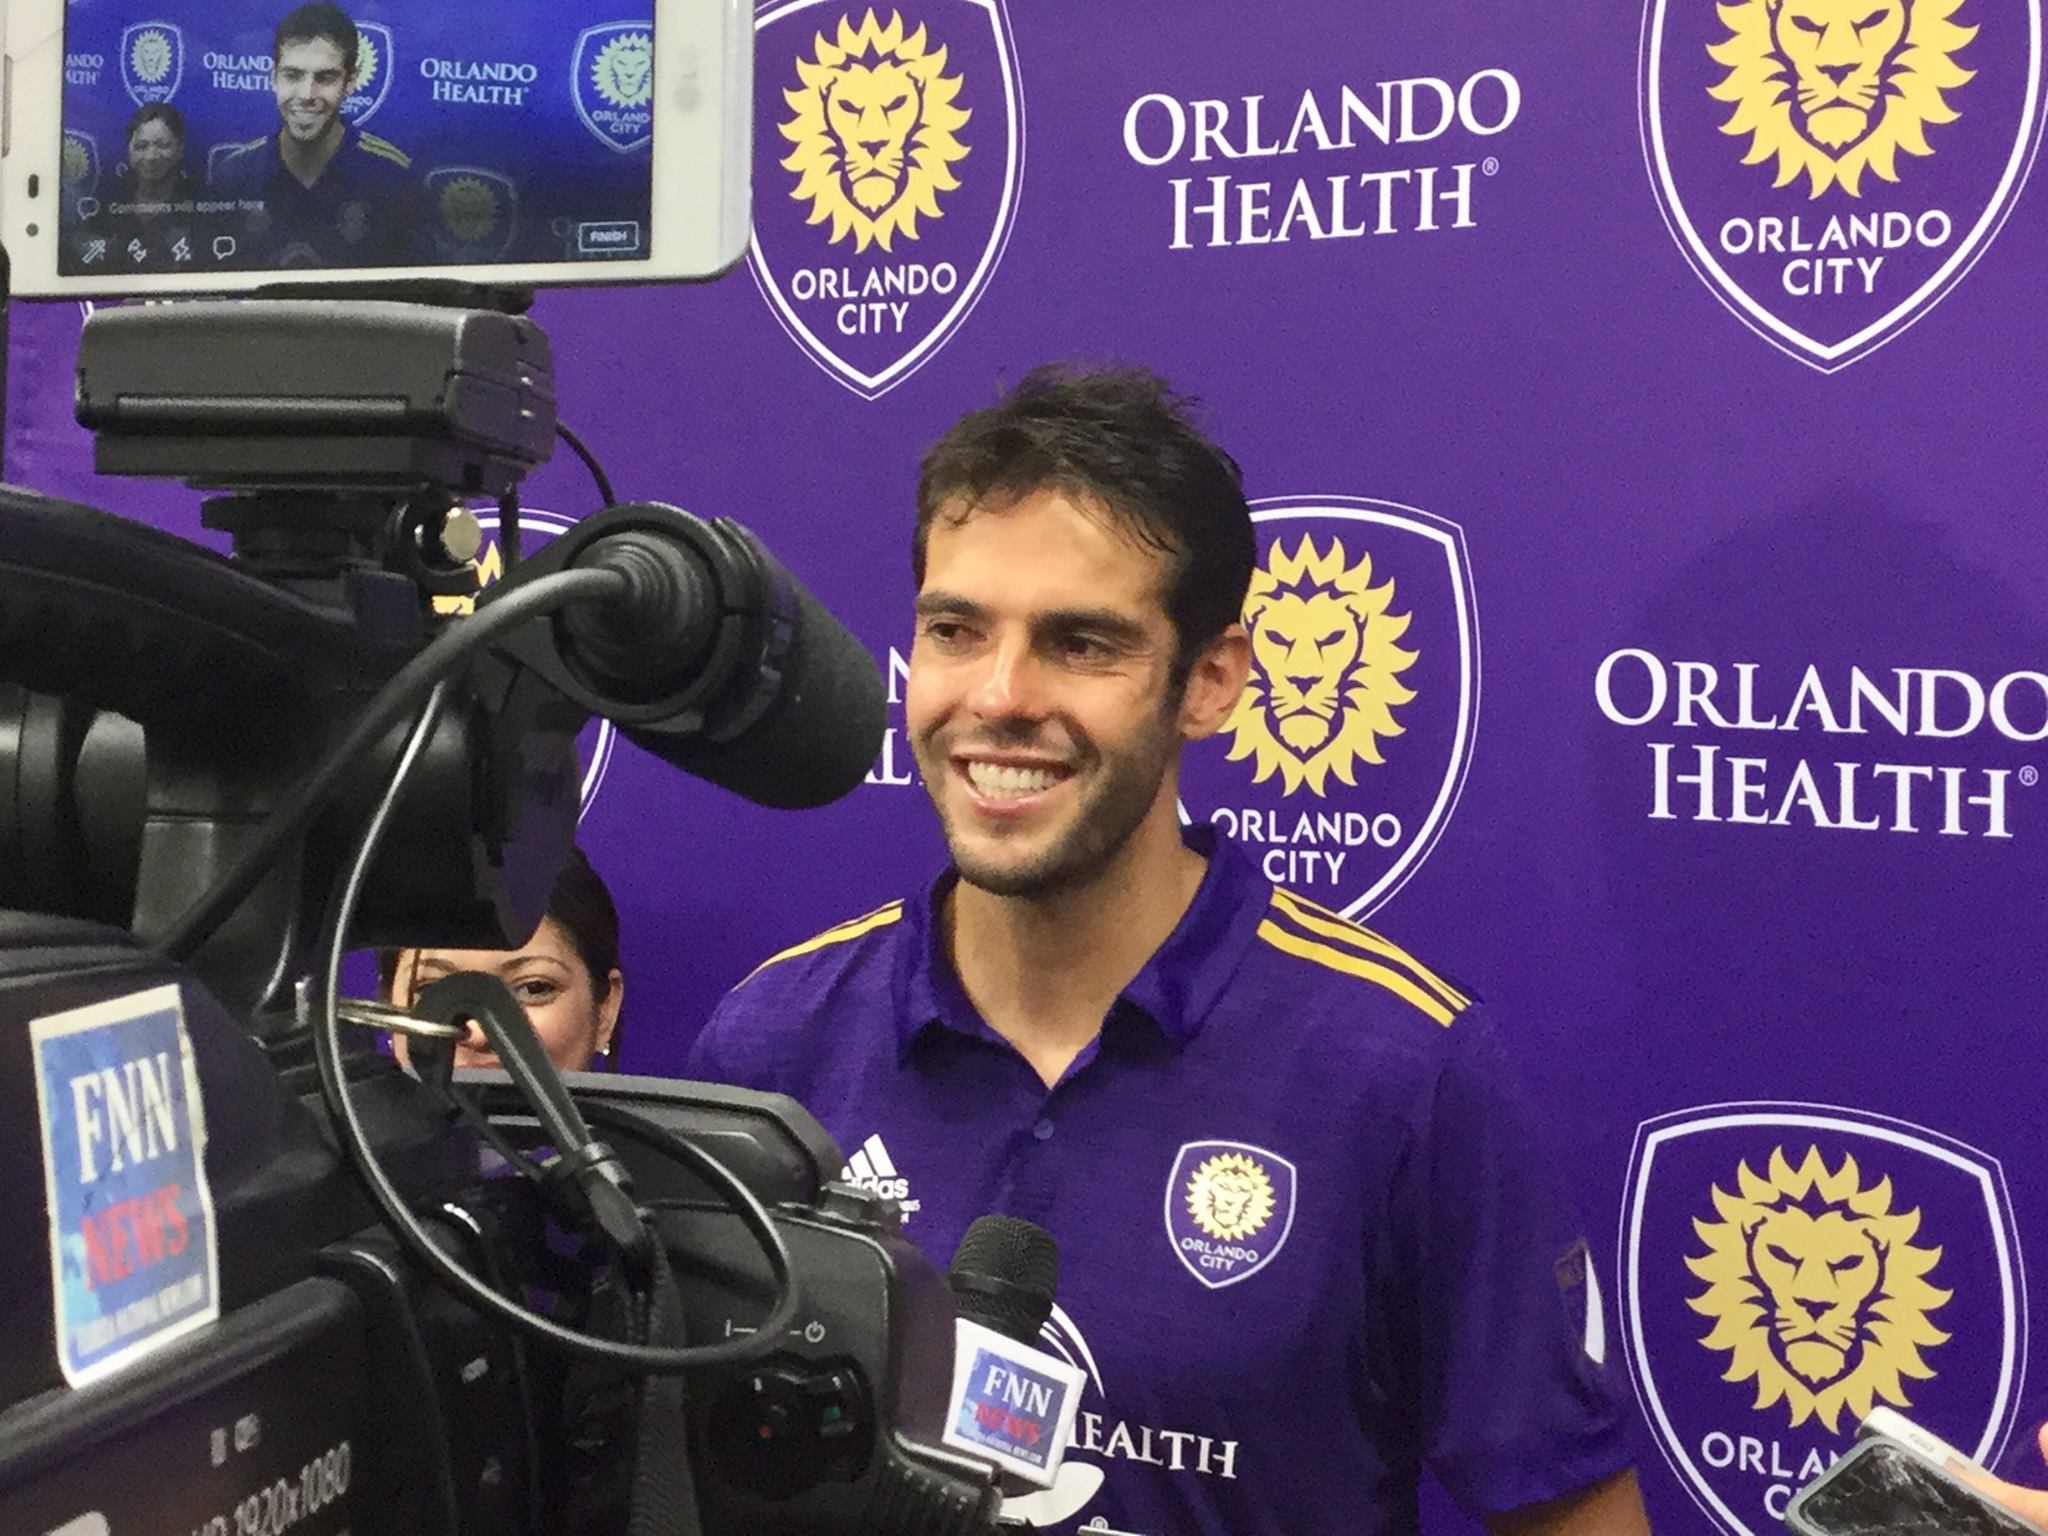 ORLANDO (FNN SPORTS) - Kaka played his final match with the Orlando City Lions as they hosted Fuerza Puerto Rico in a friendly match to raise funds to aid the island nation's recovery efforts. Photo: Mellissa Thomas/Florida National News.